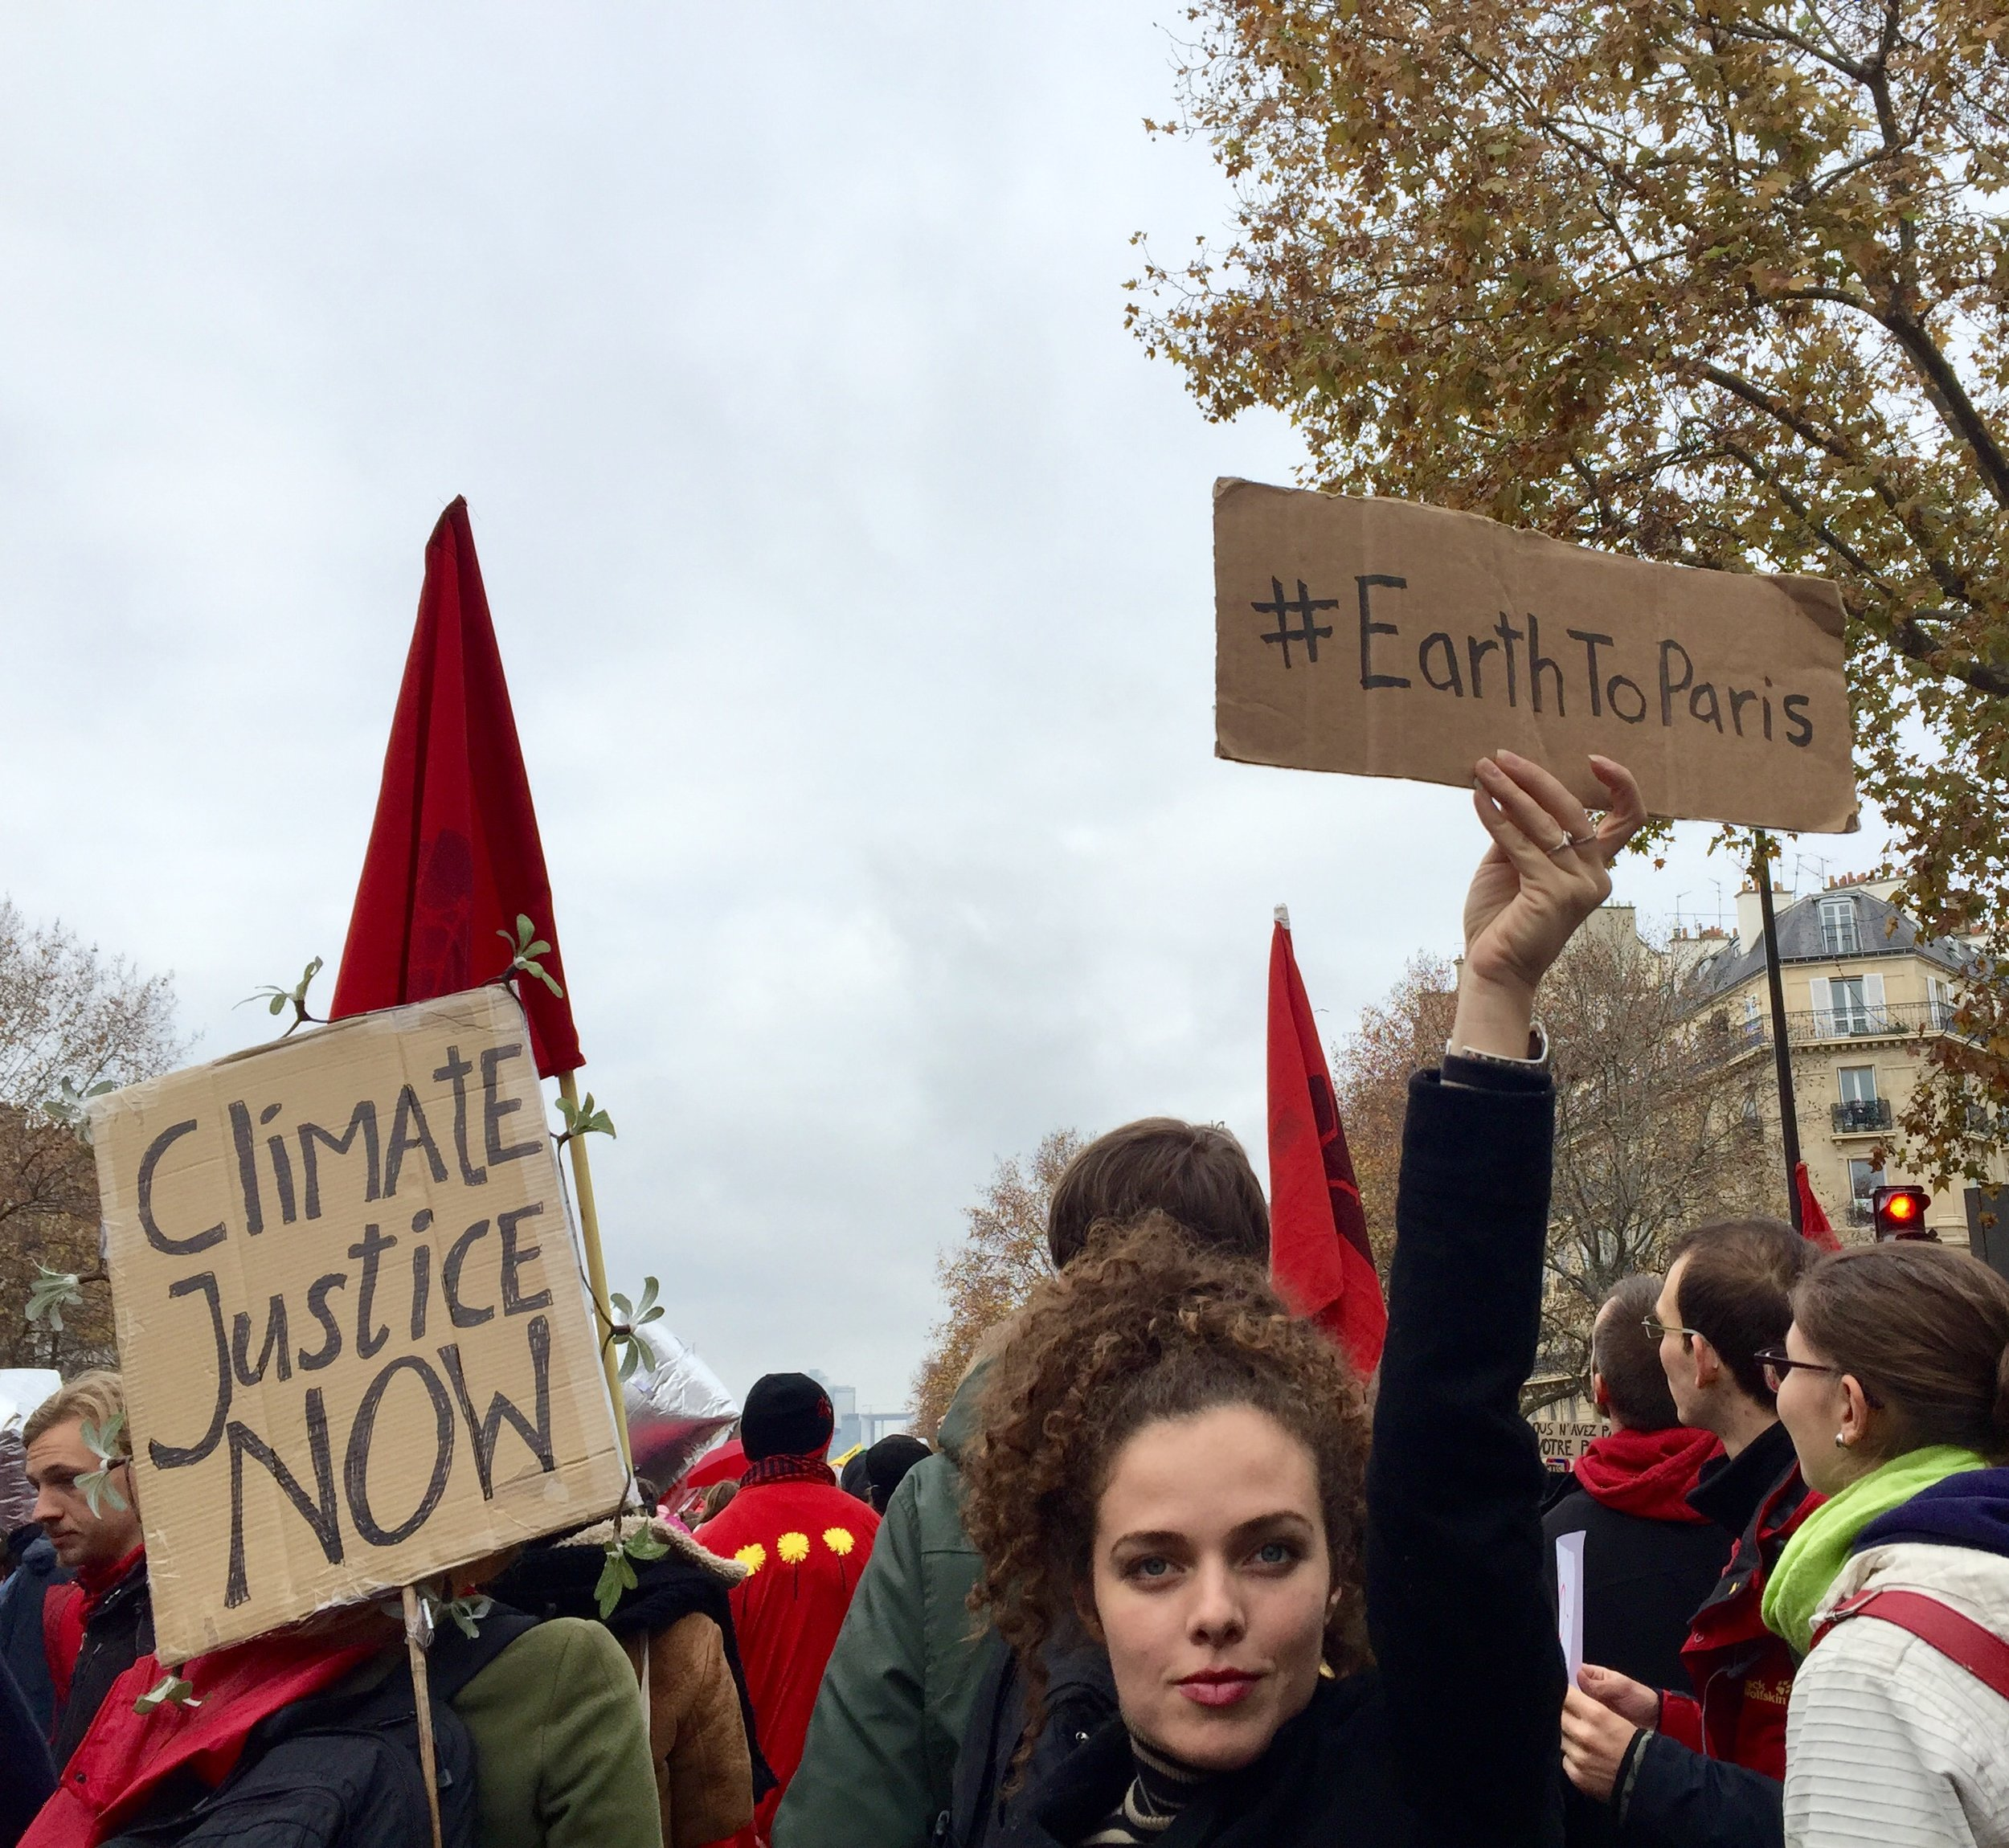 Climate marching in Paris after working on the Earth To Paris campaign for the United Nation's Framework Convention on Climate Change / COP21 Paris Agreement.